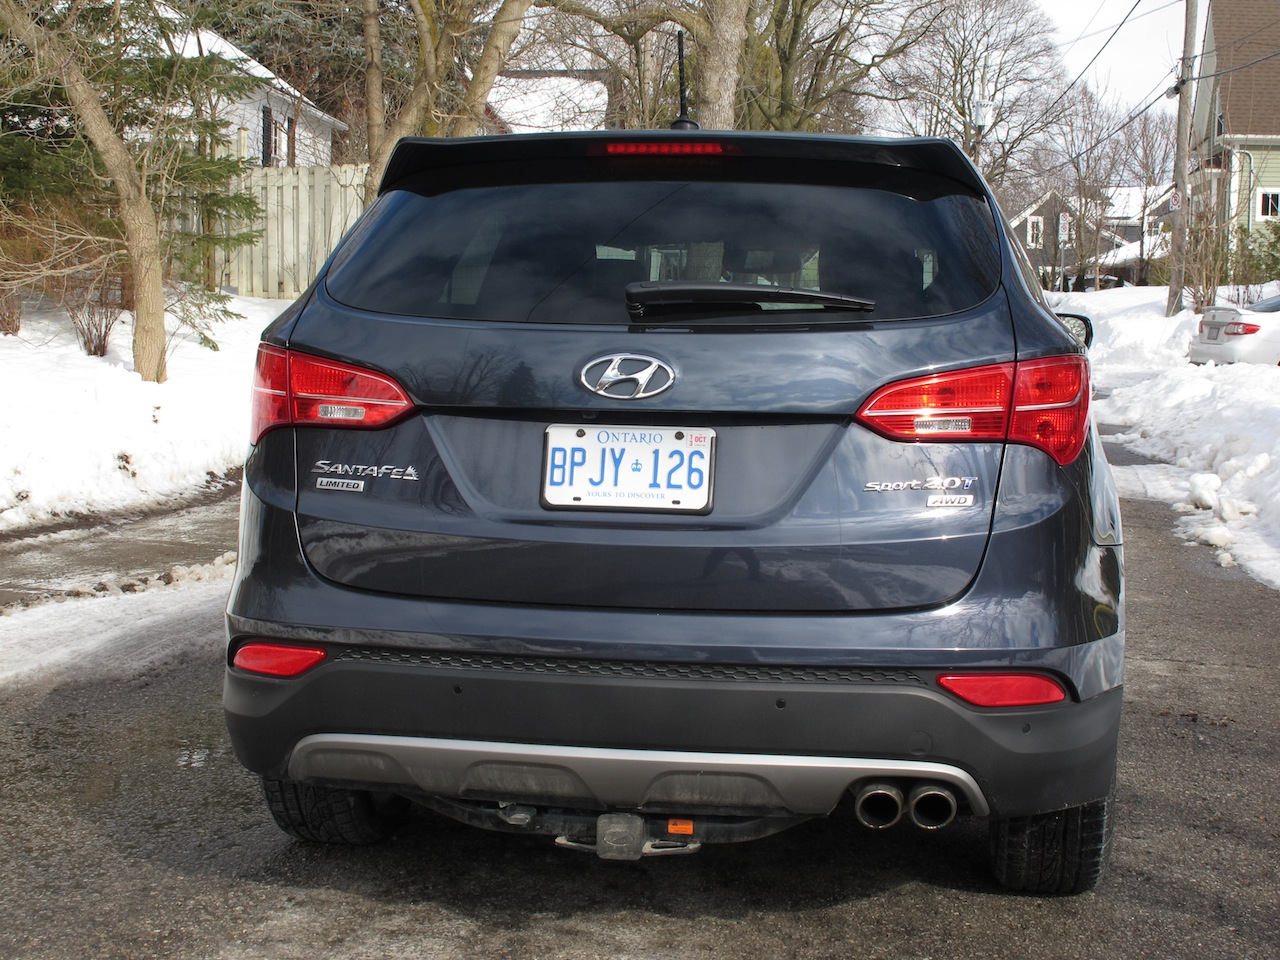 2013 Hyundai Sante Fe Sport Cars Photos Test Drives And Reviews Canadian Auto Review